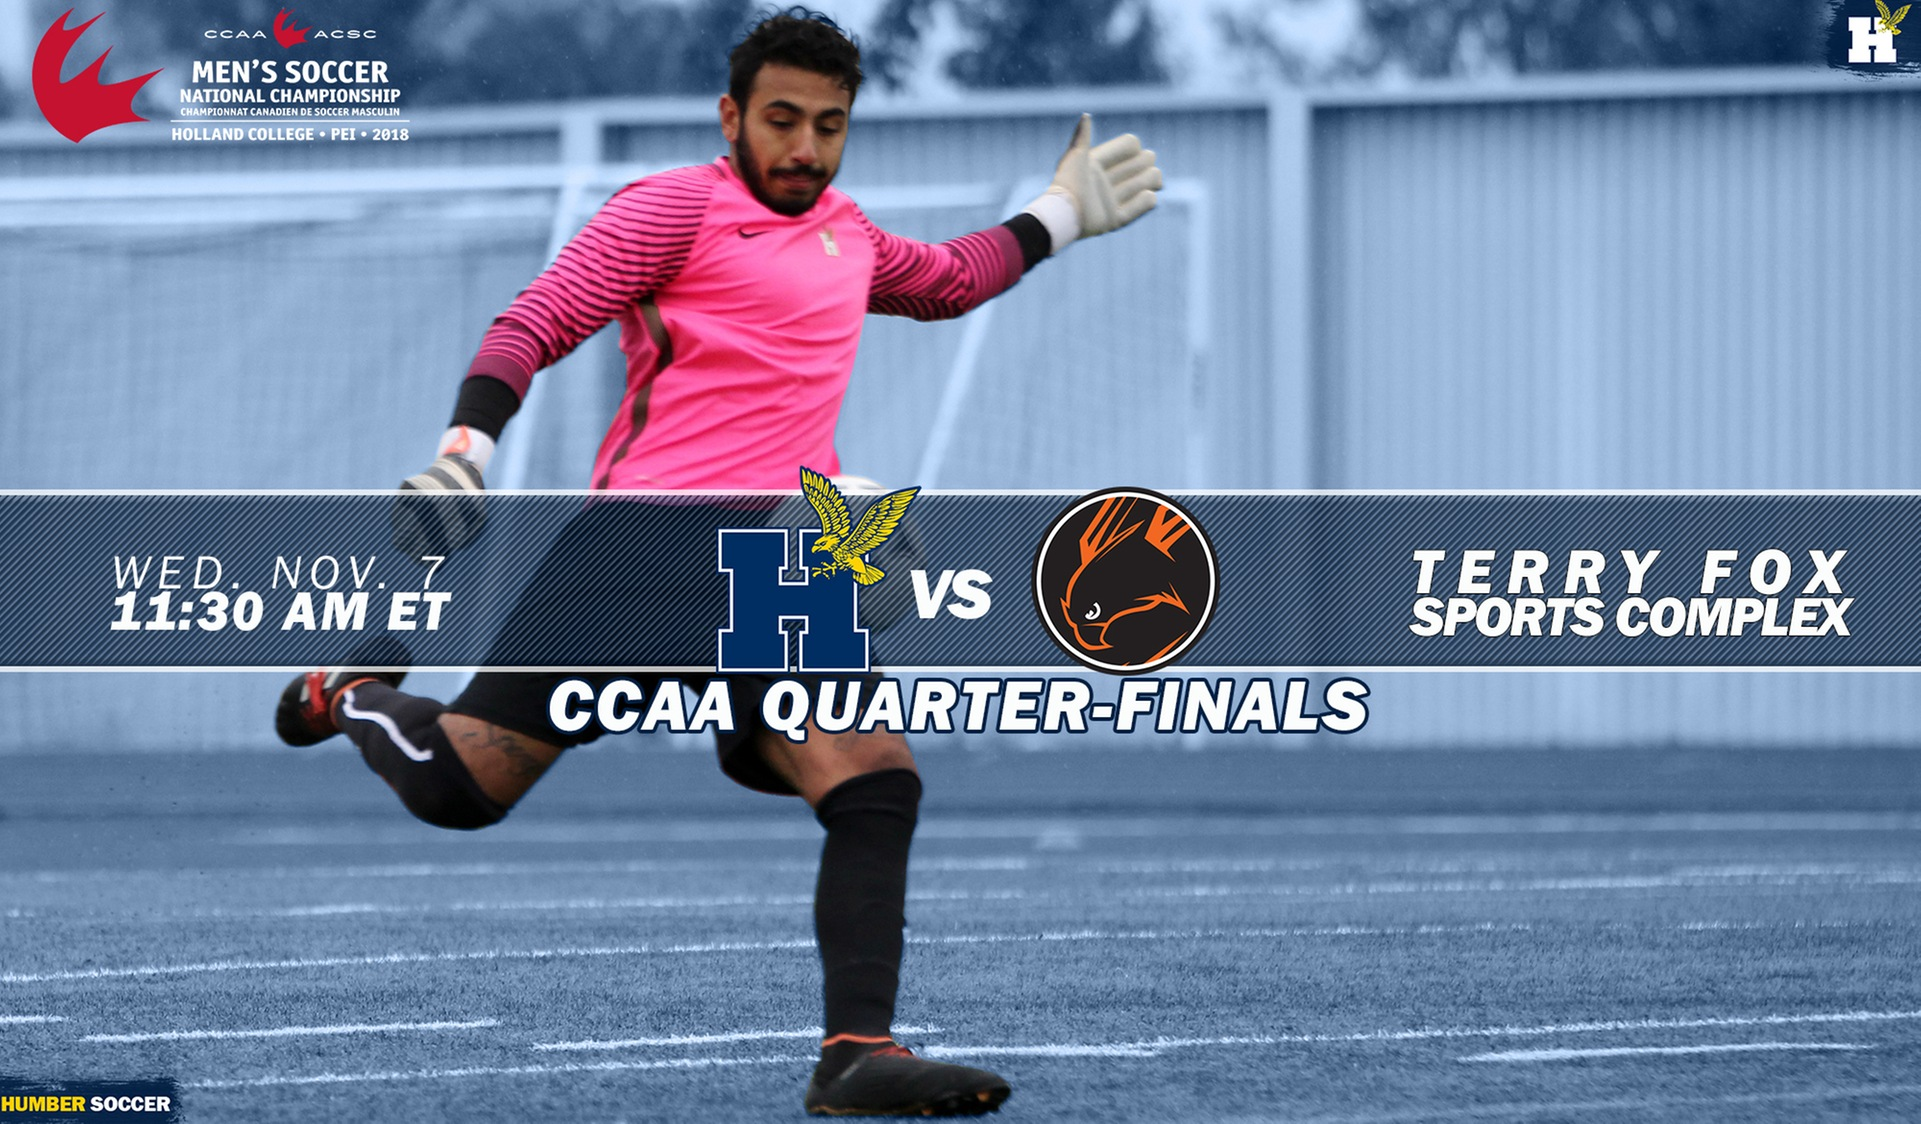 MEN'S SOCCER HEADING TO PEI IN SEARCH OF SEVENTH NATIONAL TITLE